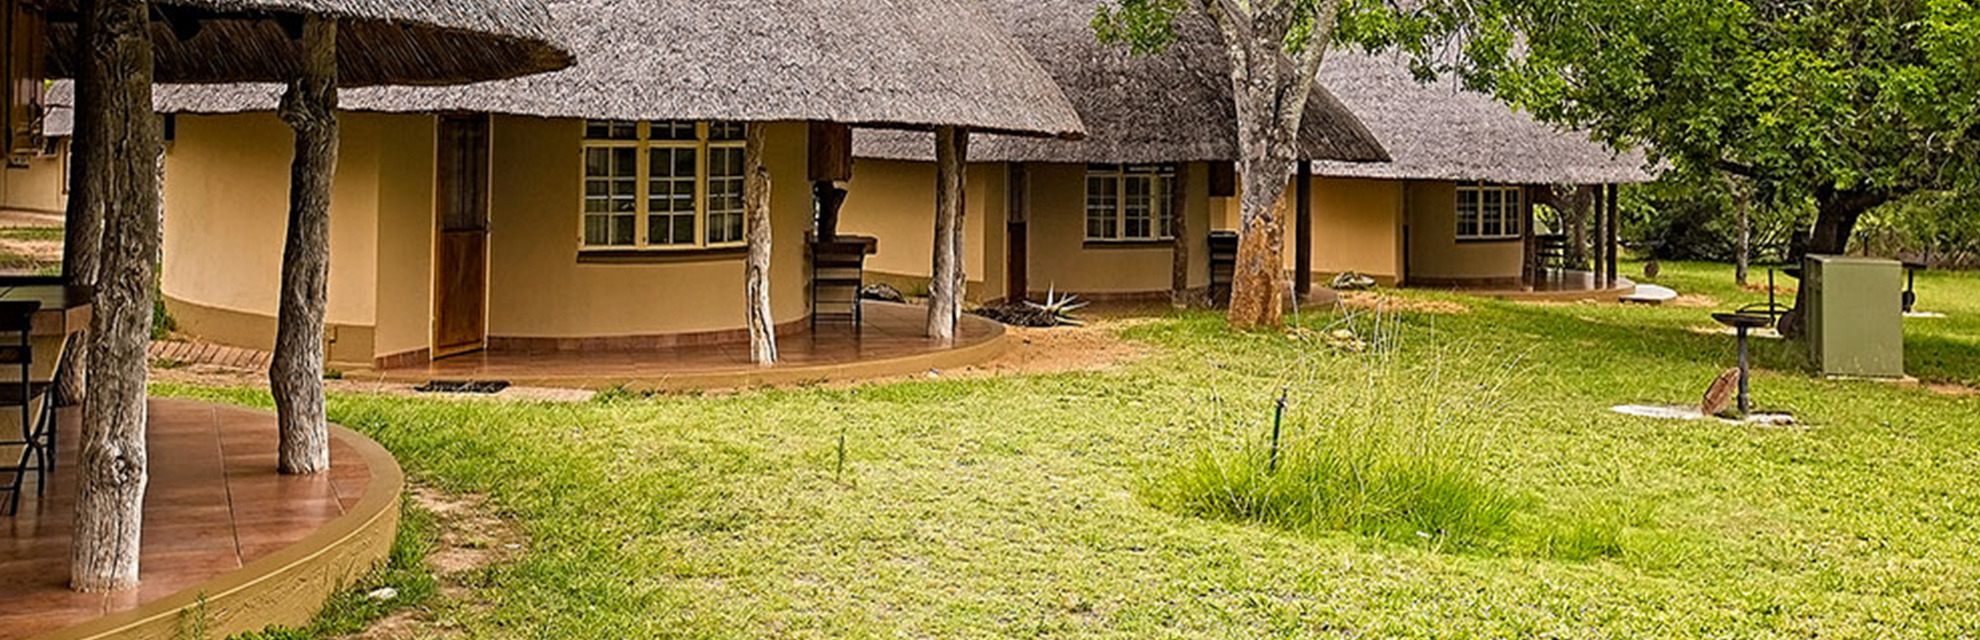 kruger-fly-in-safari-accomodation